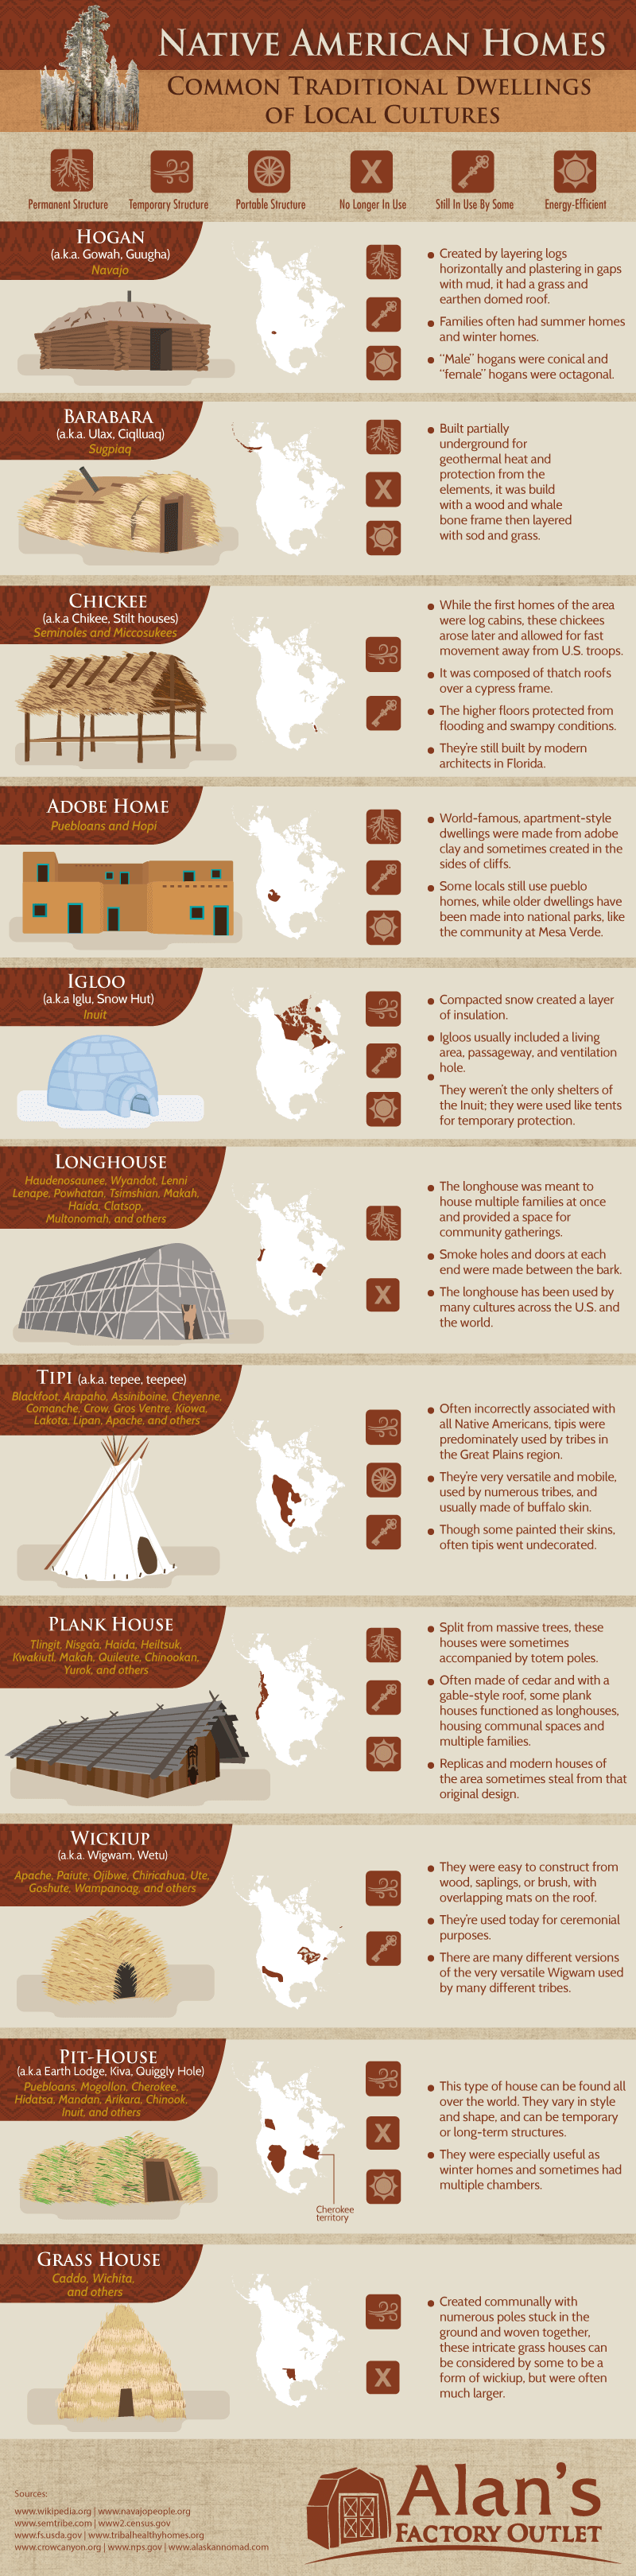 Native American Homes: Common Traditional Dwellings of Local Cultures - AlansFactoryOutlet.com - Infographic